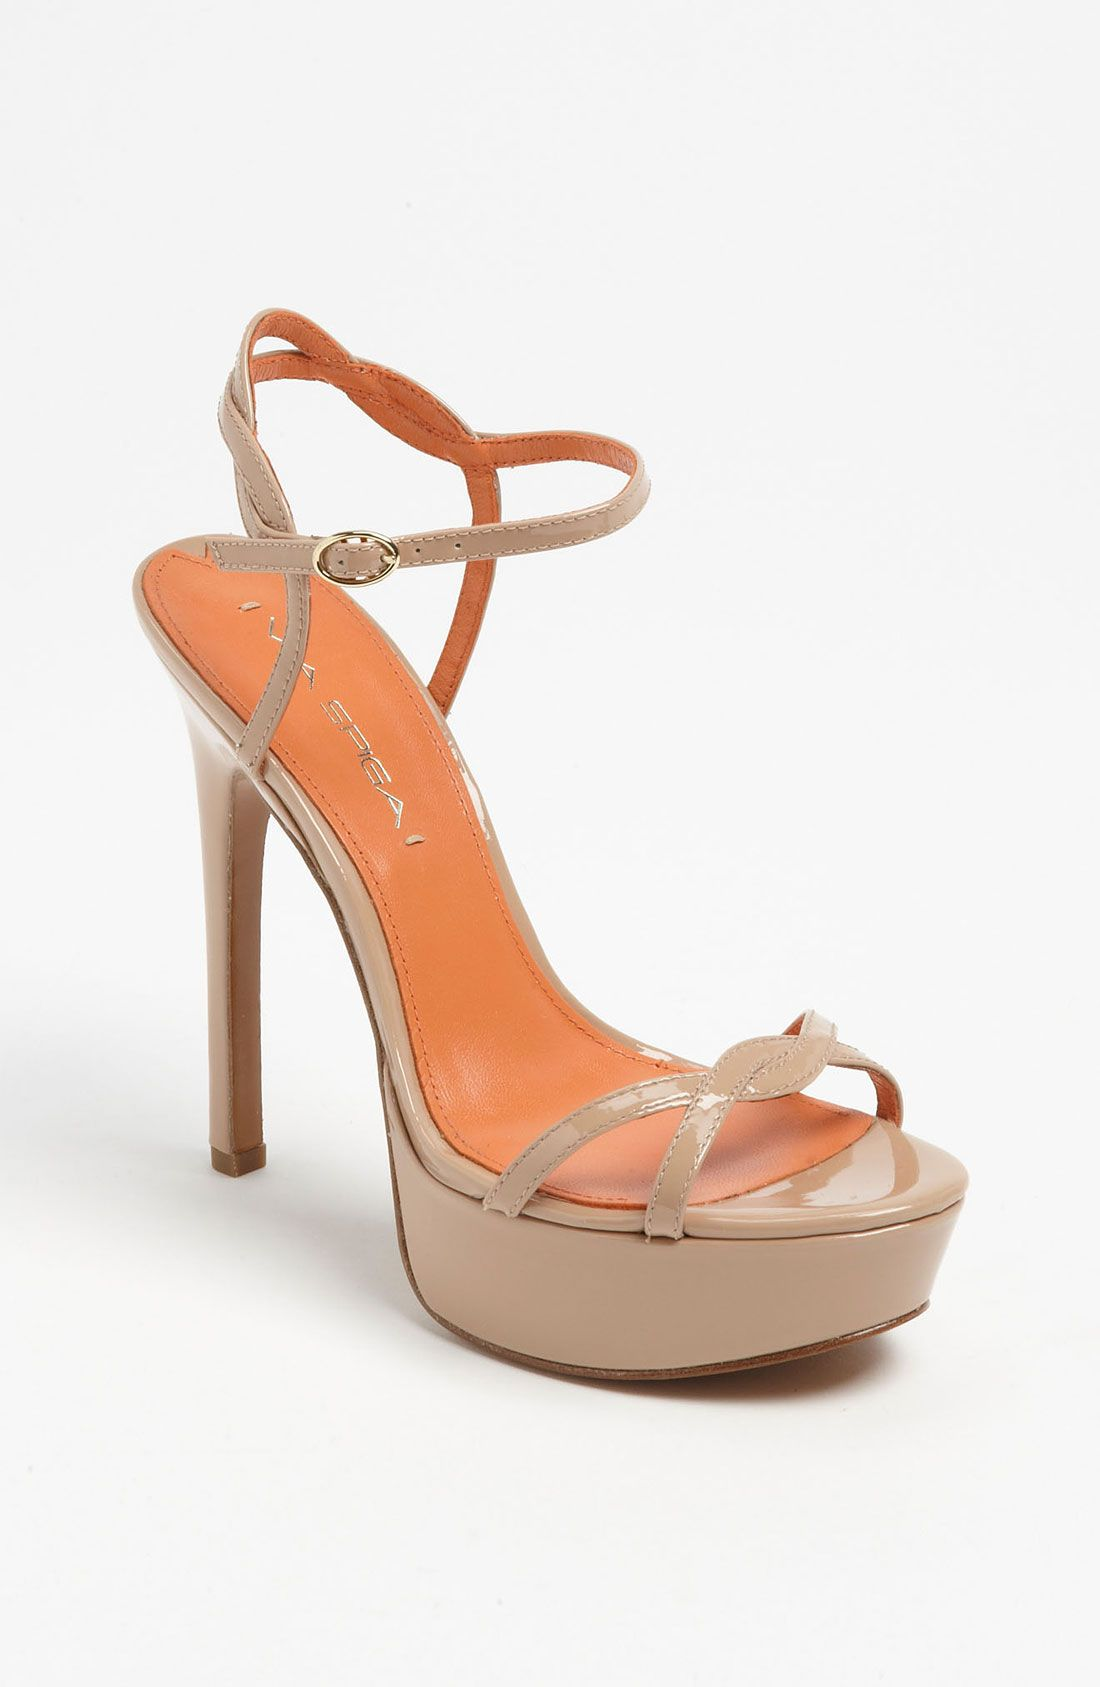 4c36ba73054f Via Spiga Heavenly Sandal in Beige (end of color list nude patent ...